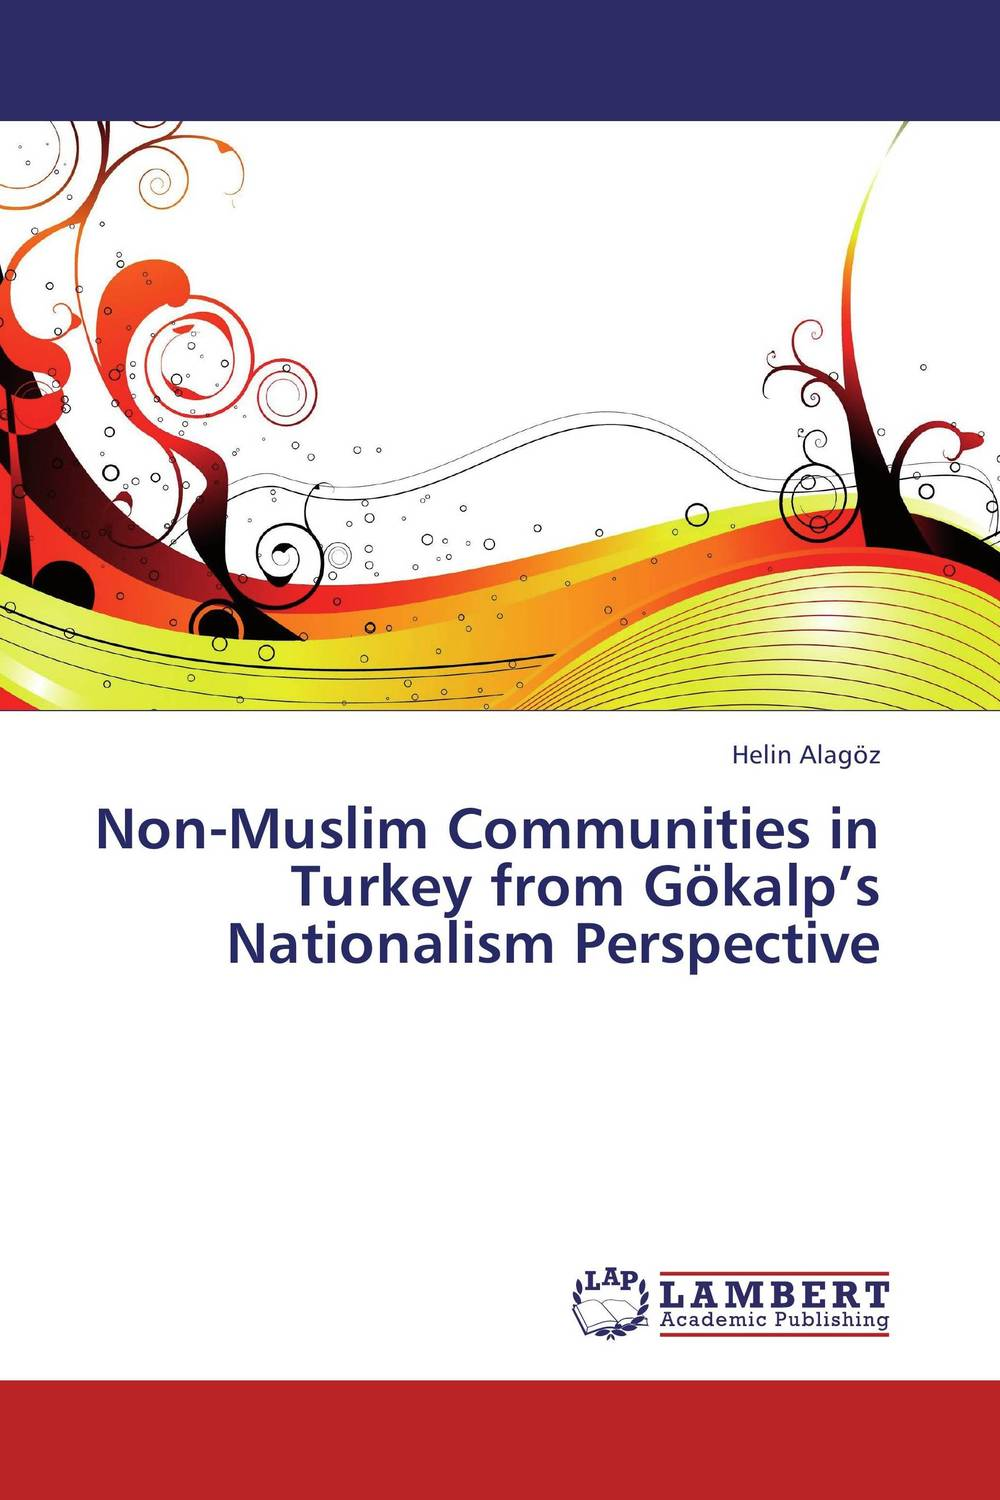 Non-Muslim Communities in Turkey from Gokalp's Nationalism Perspective communities of discourse – ideology